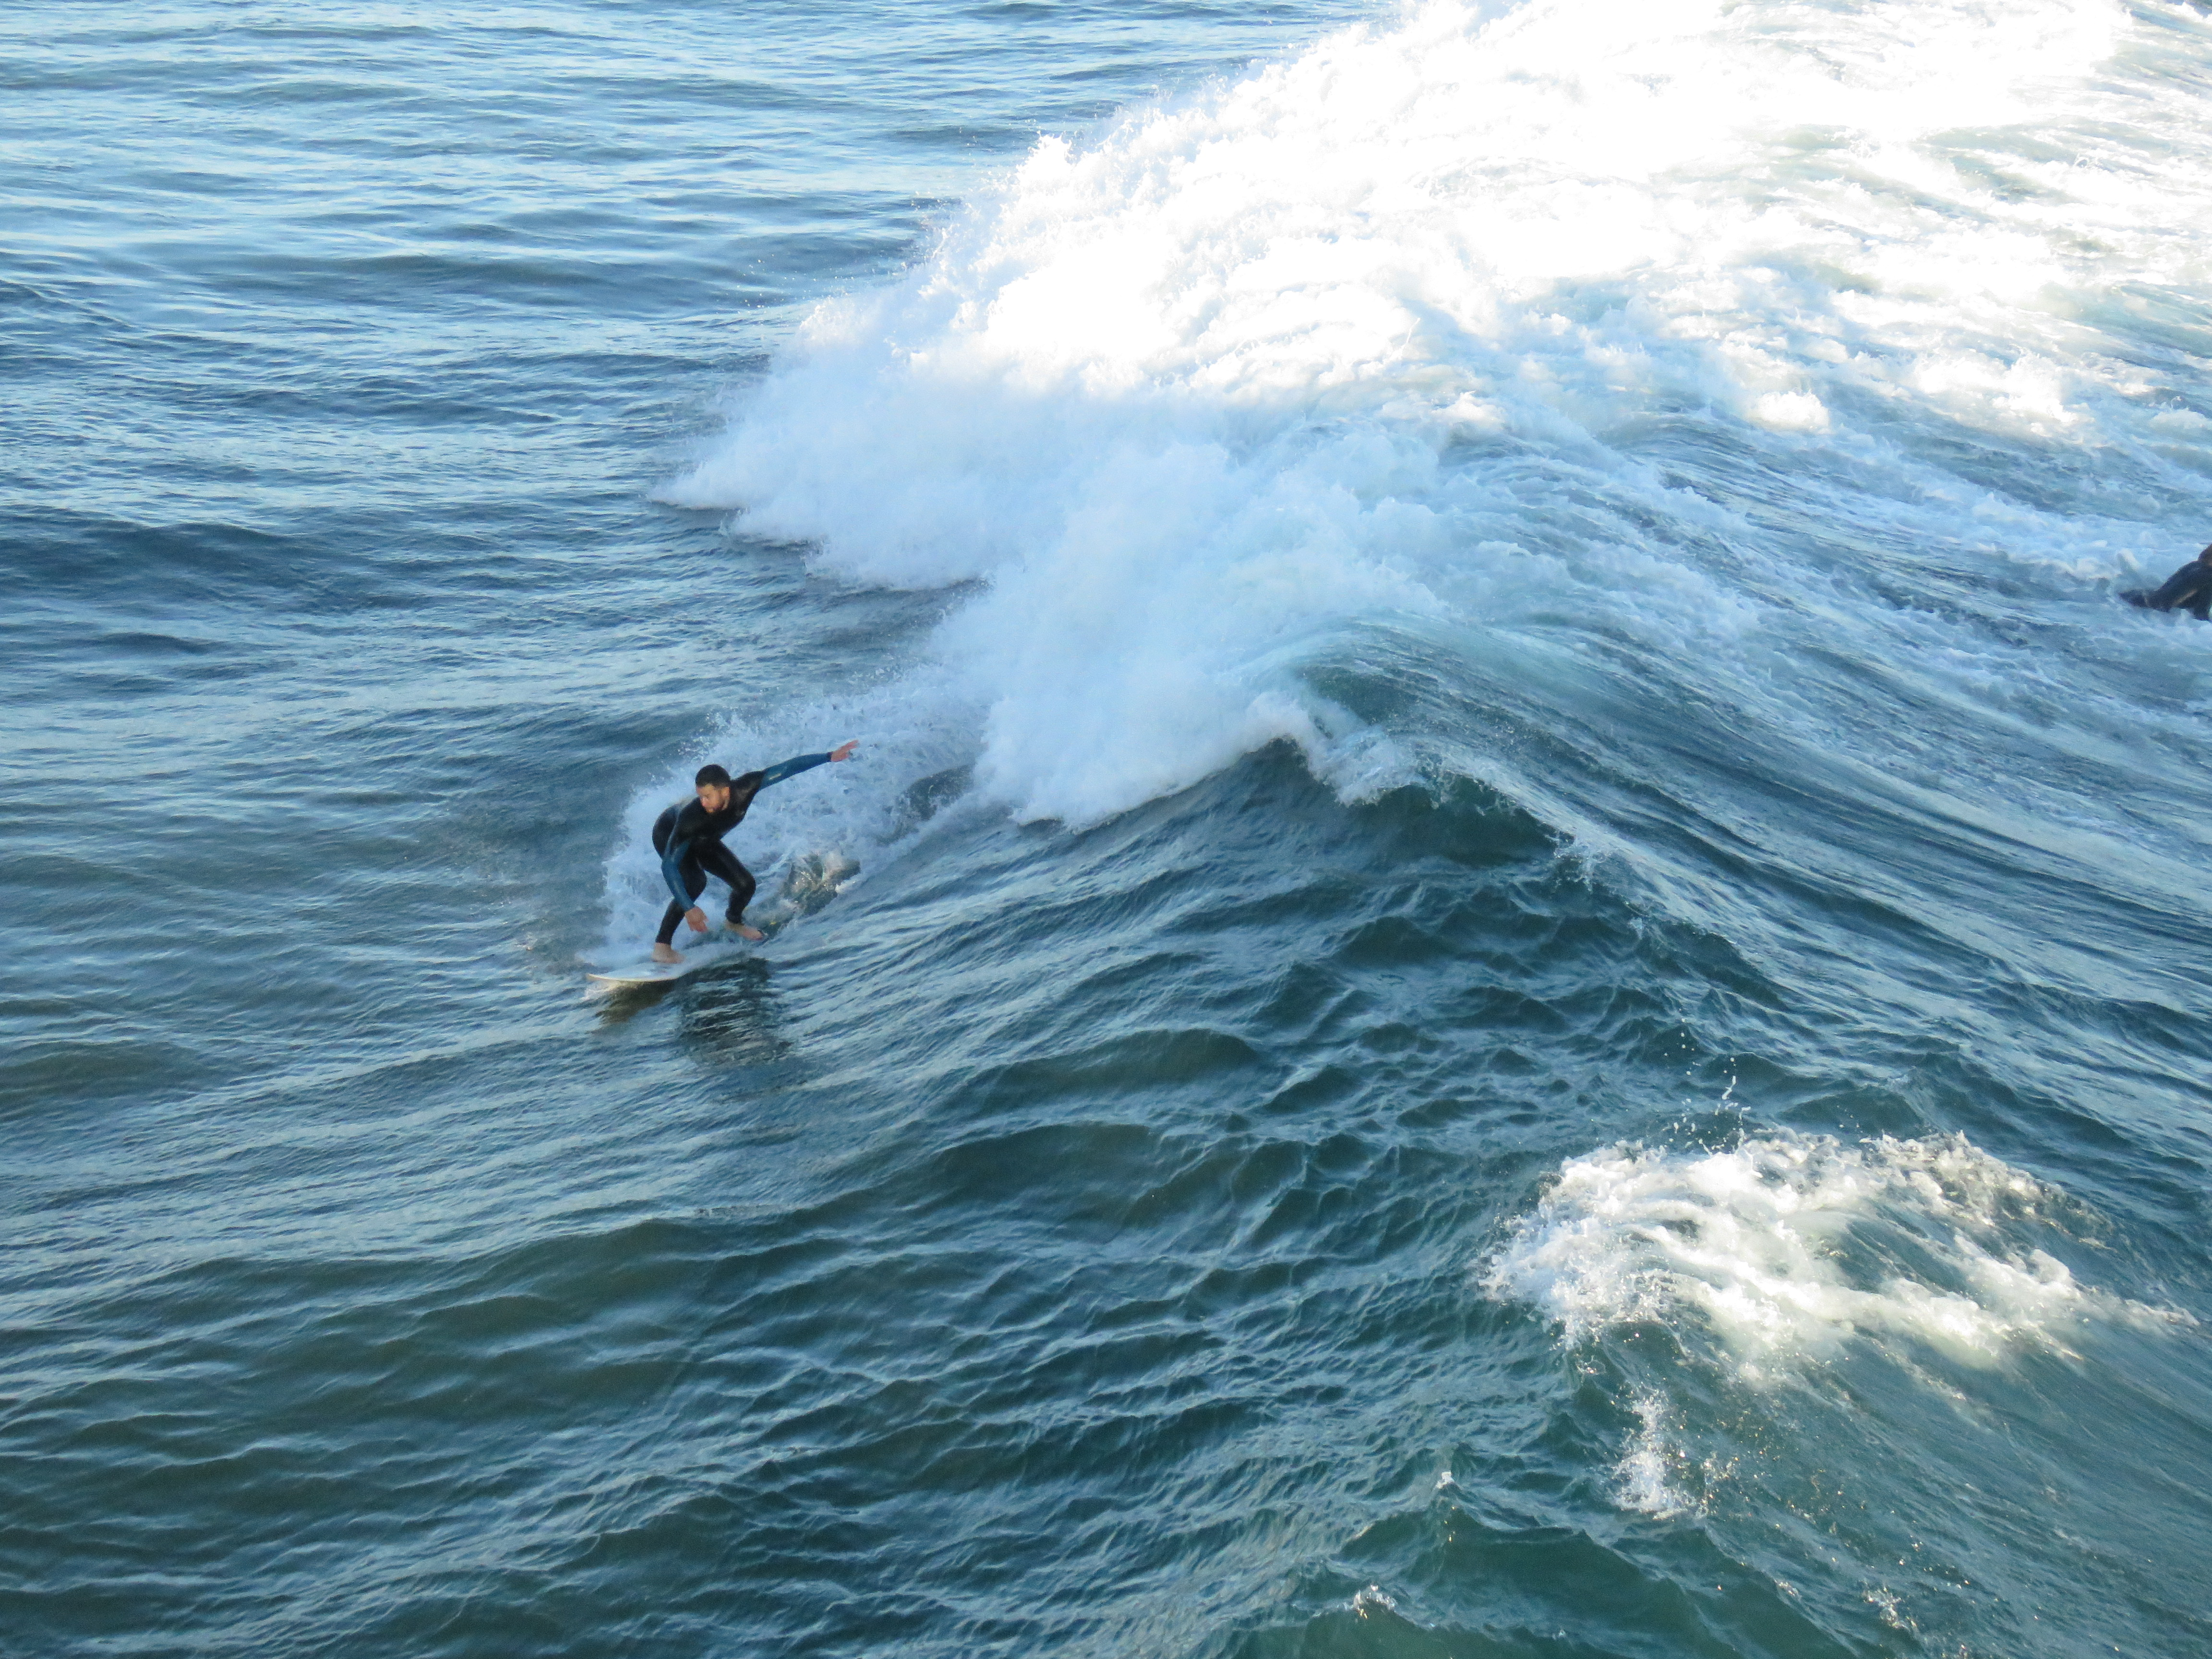 surfer riding upcoming wave